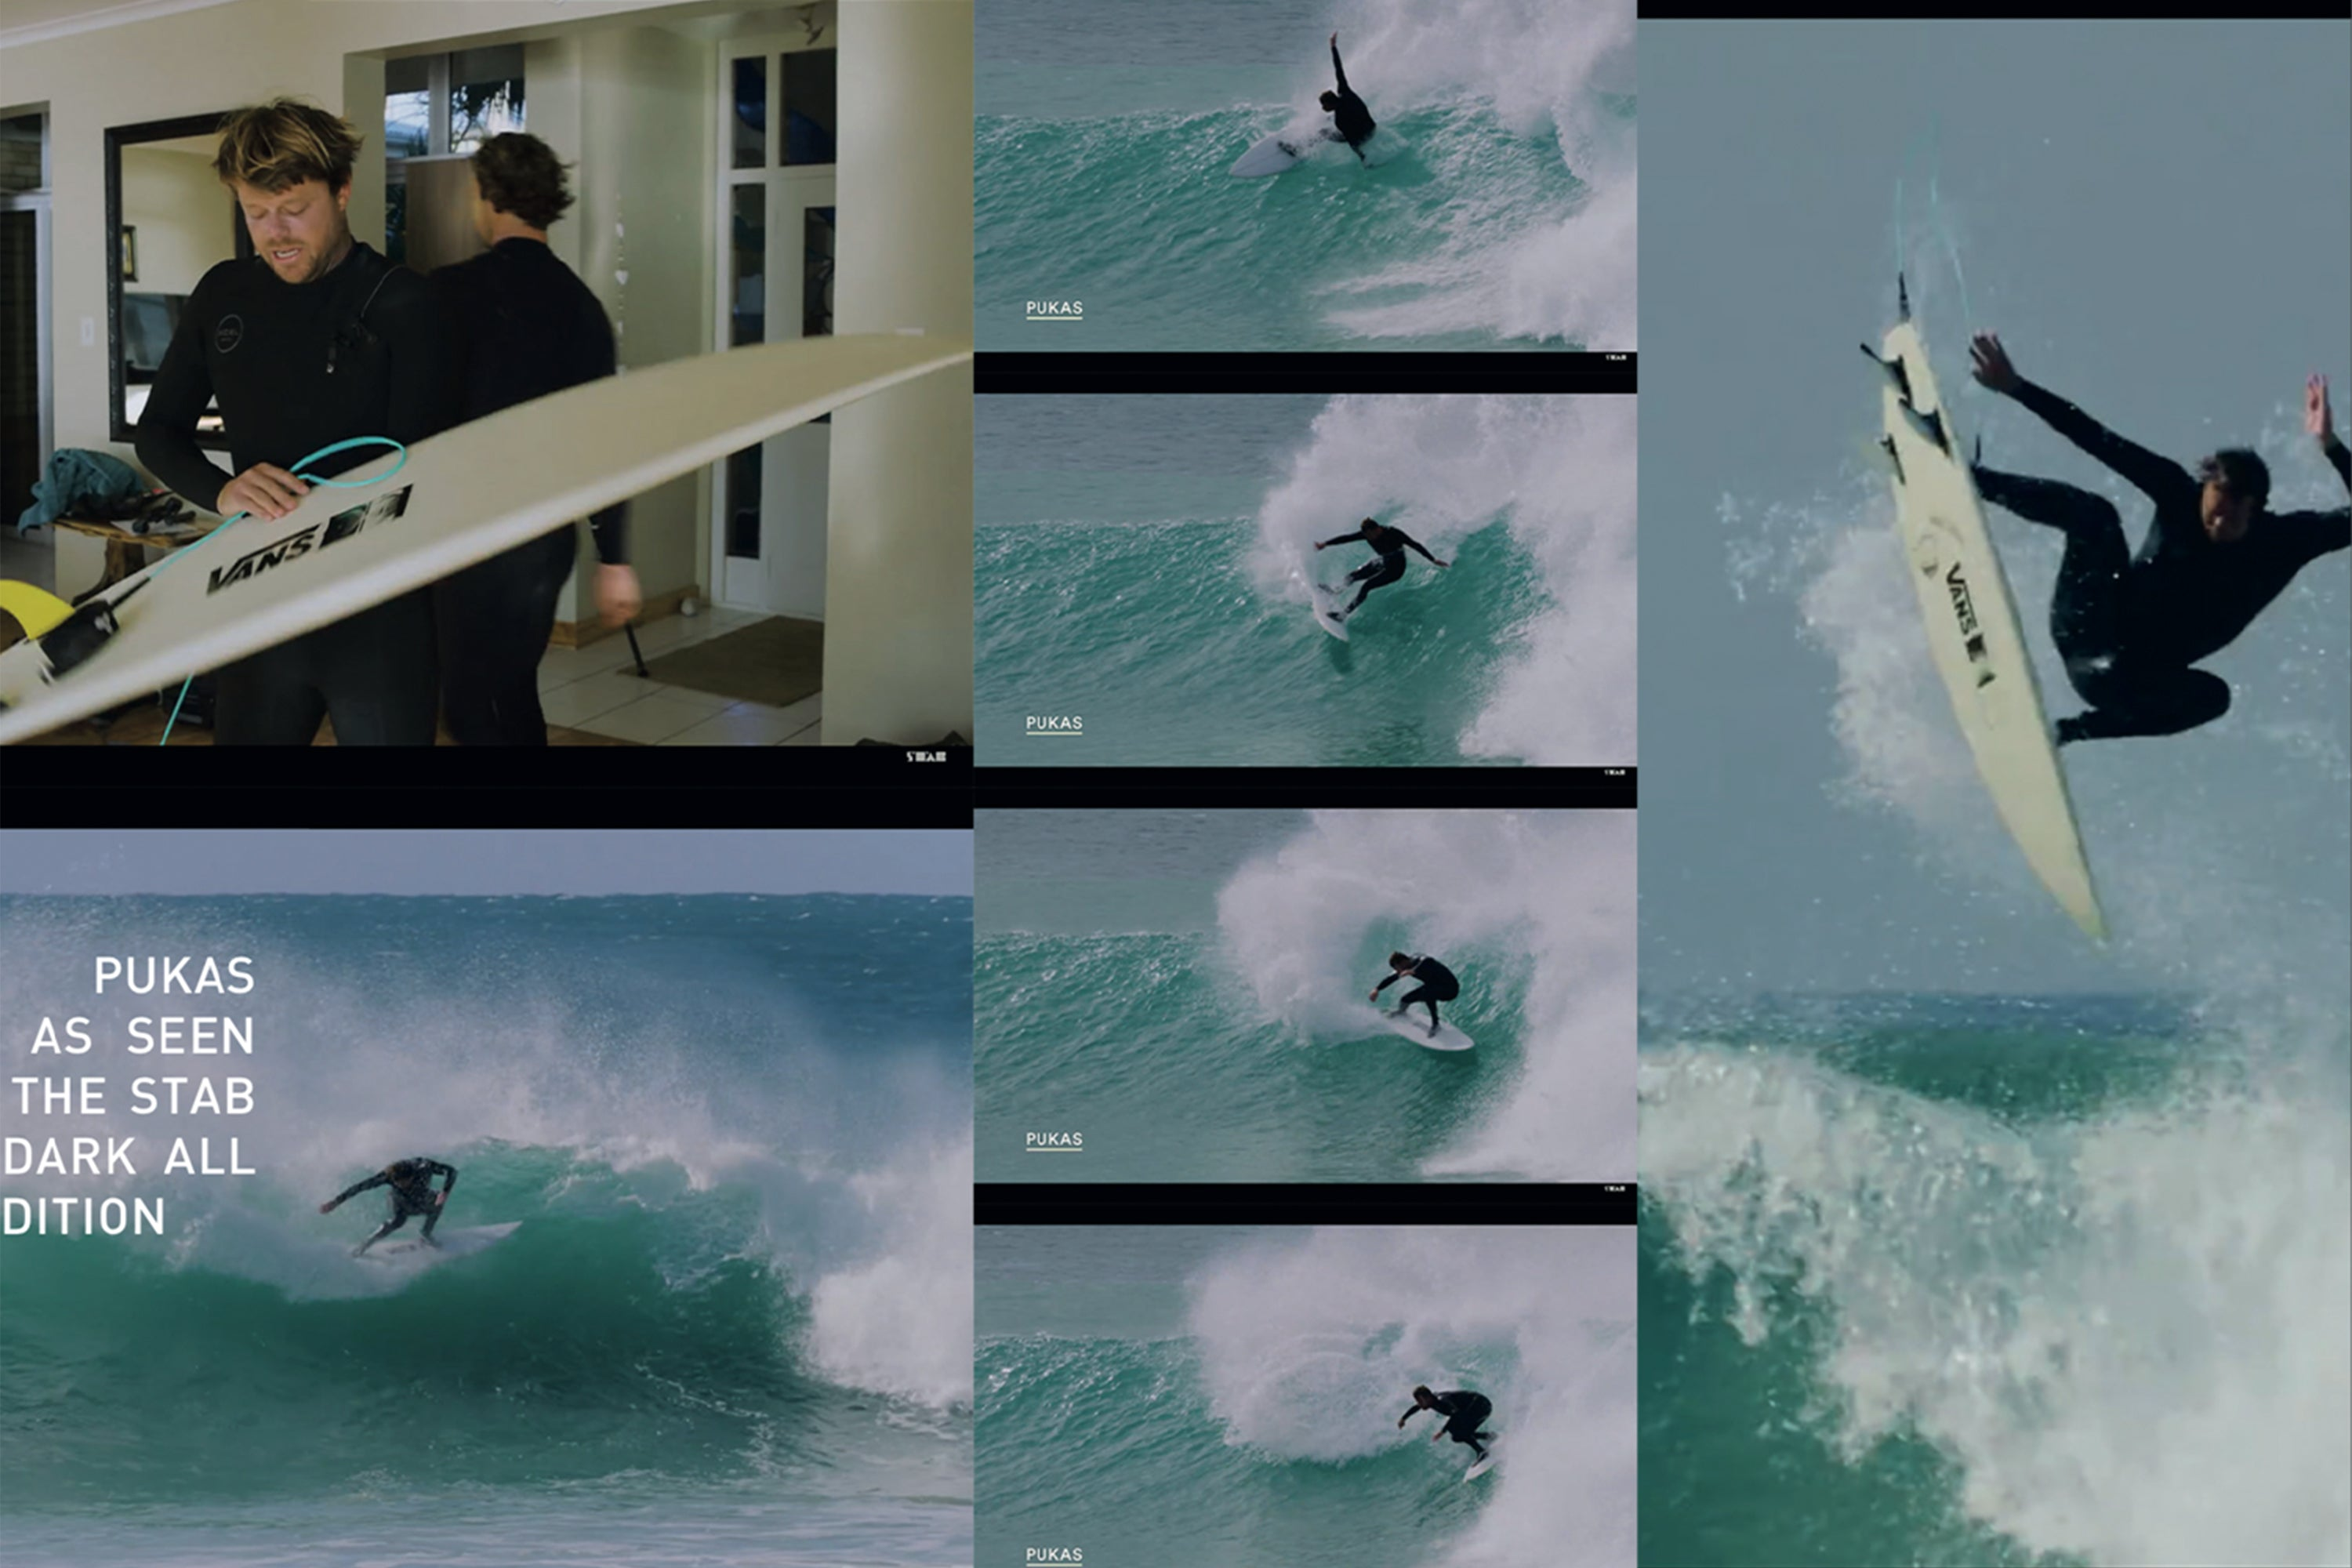 Pukas Darker as seen in Stab in the Dark All Stars Edition with Dane Reynolds and Jordy Smith